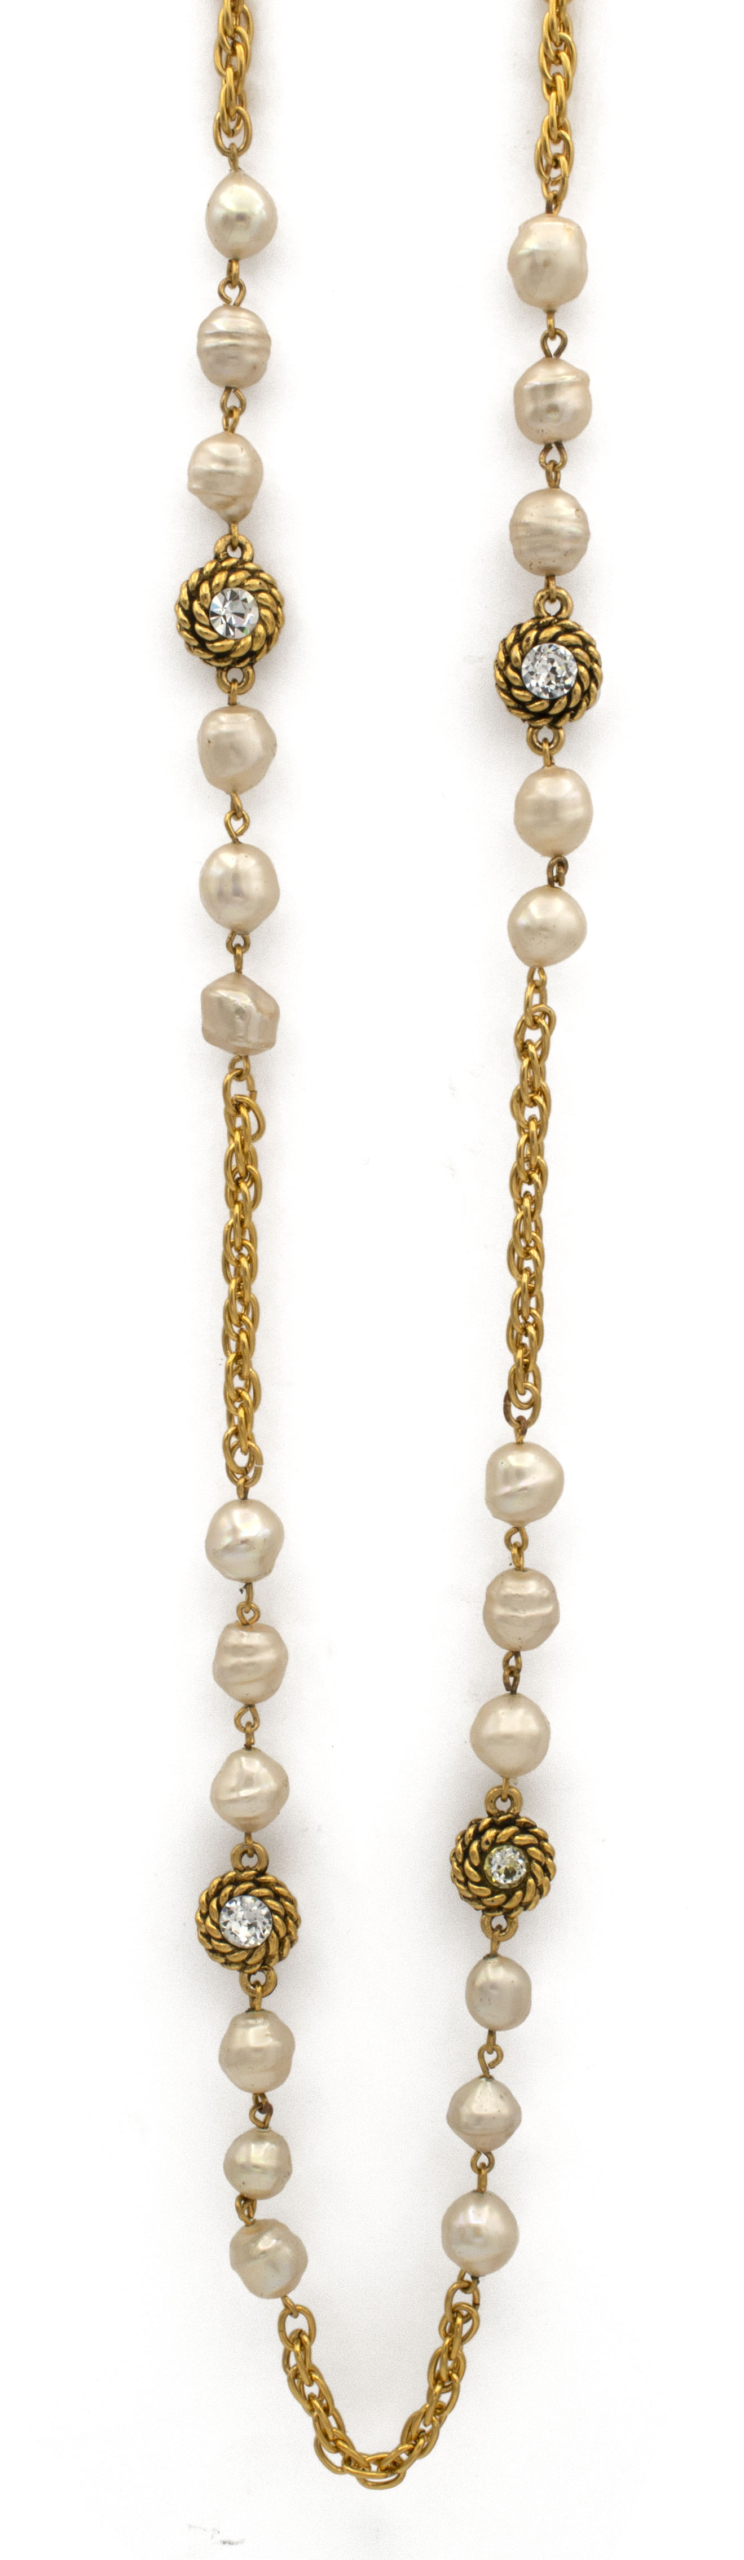 "Chanel 70"" Alternating Pearls & Gilt Rope Twist Chain Necklace, 1990"